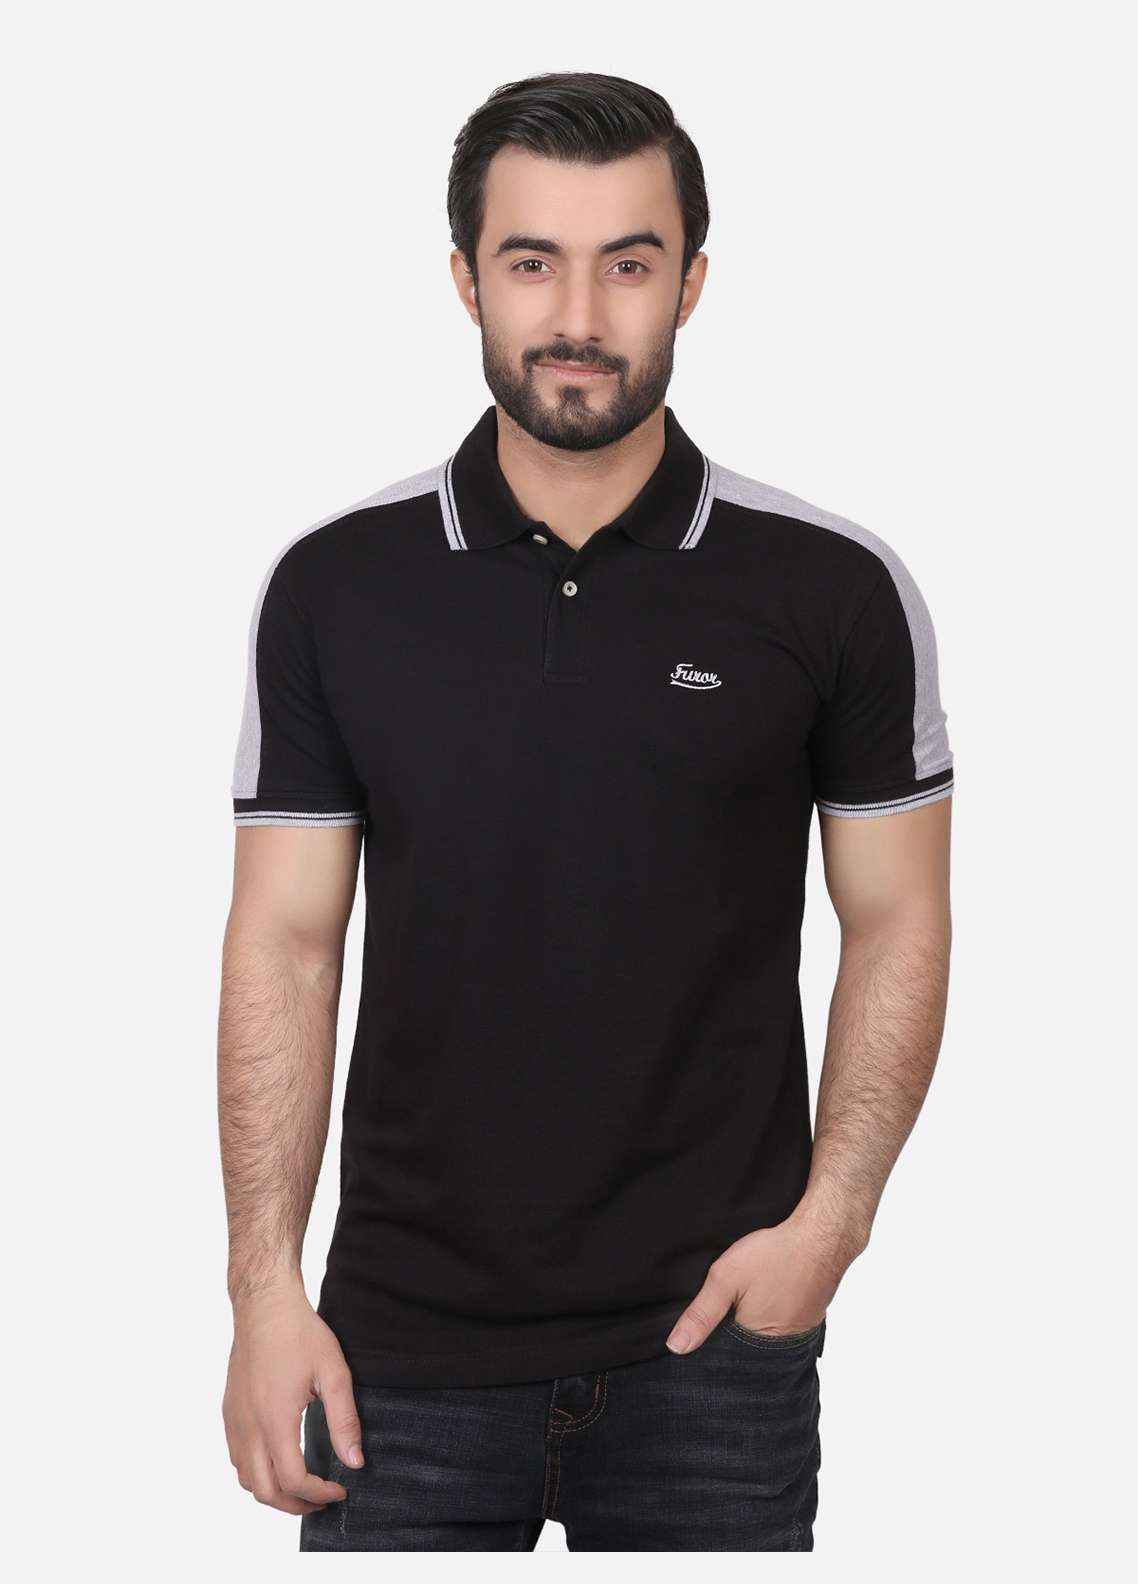 Furor Cotton Polo T-Shirts for Men - Black FRM18PS 024